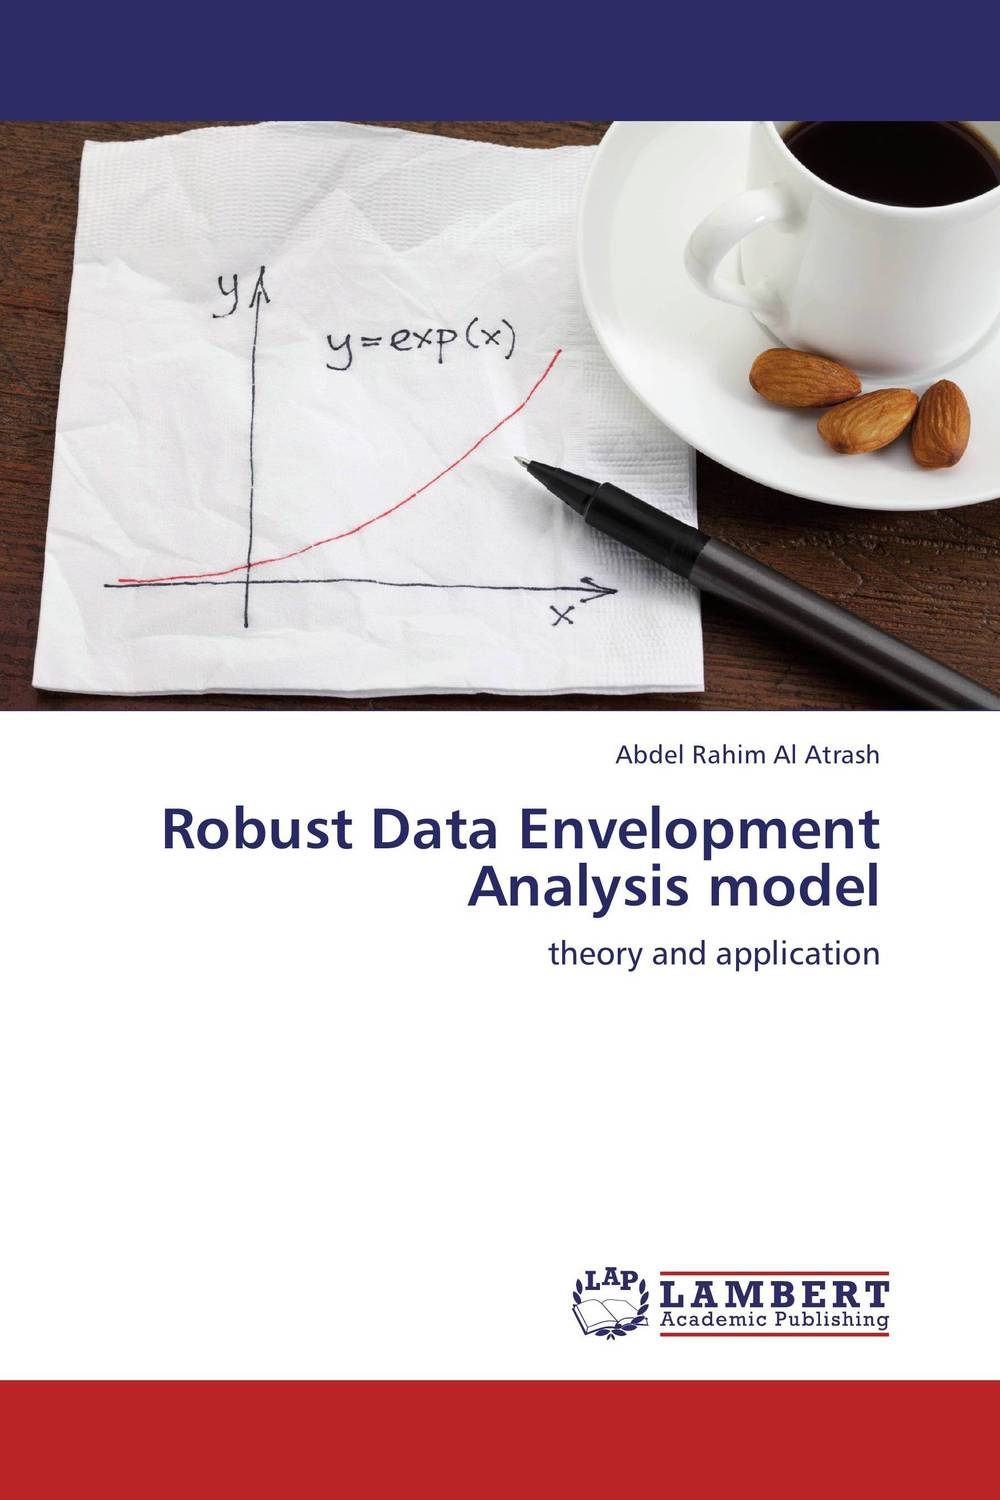 Robust Data Envelopment Analysis model nicholas michael the little black book of decision making